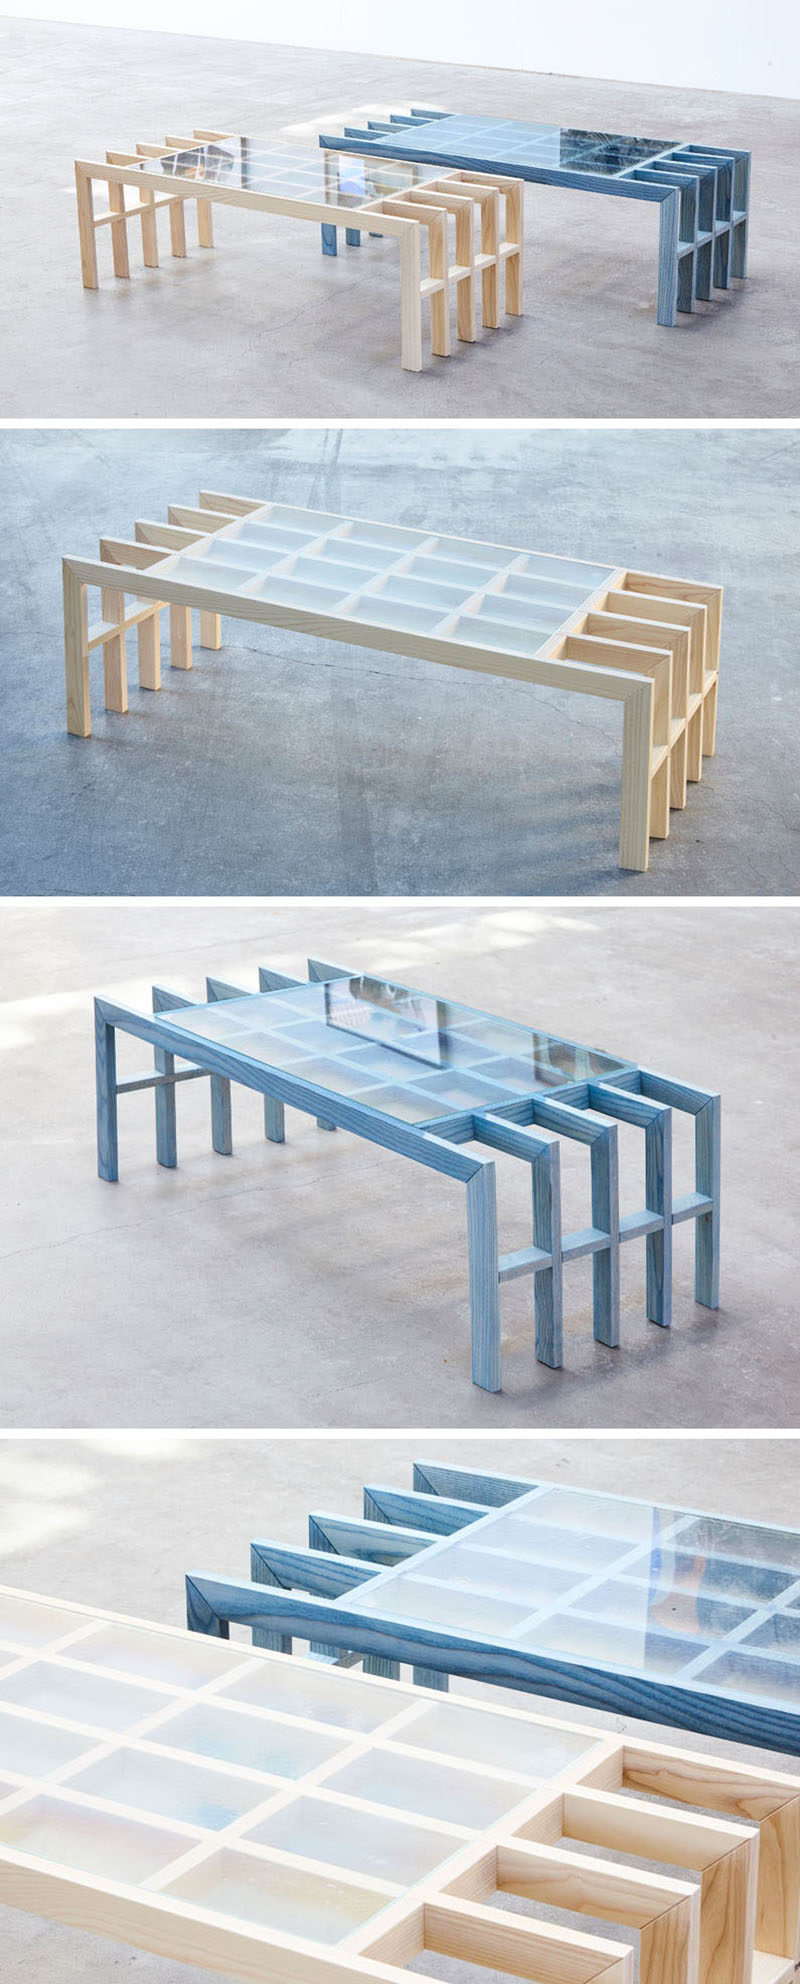 Australian based designerElliot Bastianon, has created a new modern furniture collection named 'Straight Lines'. #ModernFurniture #Design #CoffeeTable #Wood